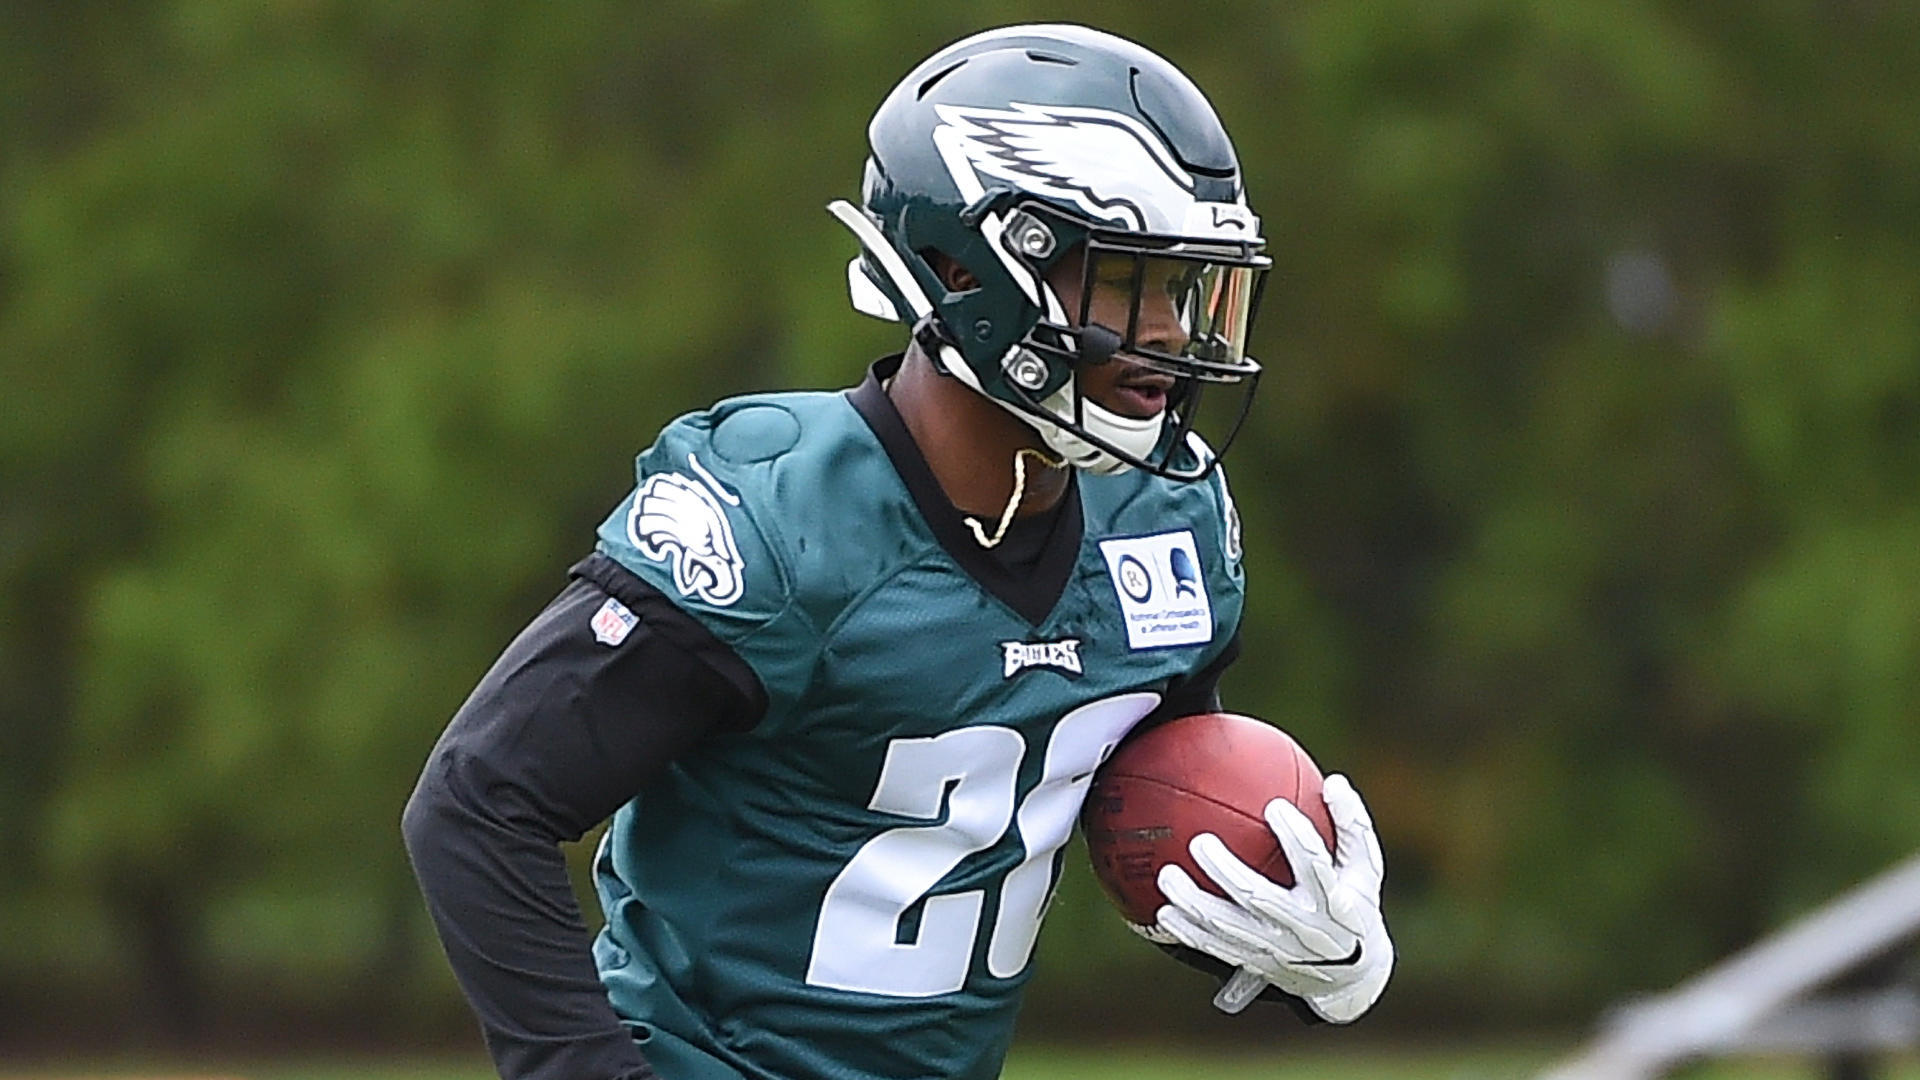 2019 Fantasy Football Team Previews: Eagles have added talent everywhere